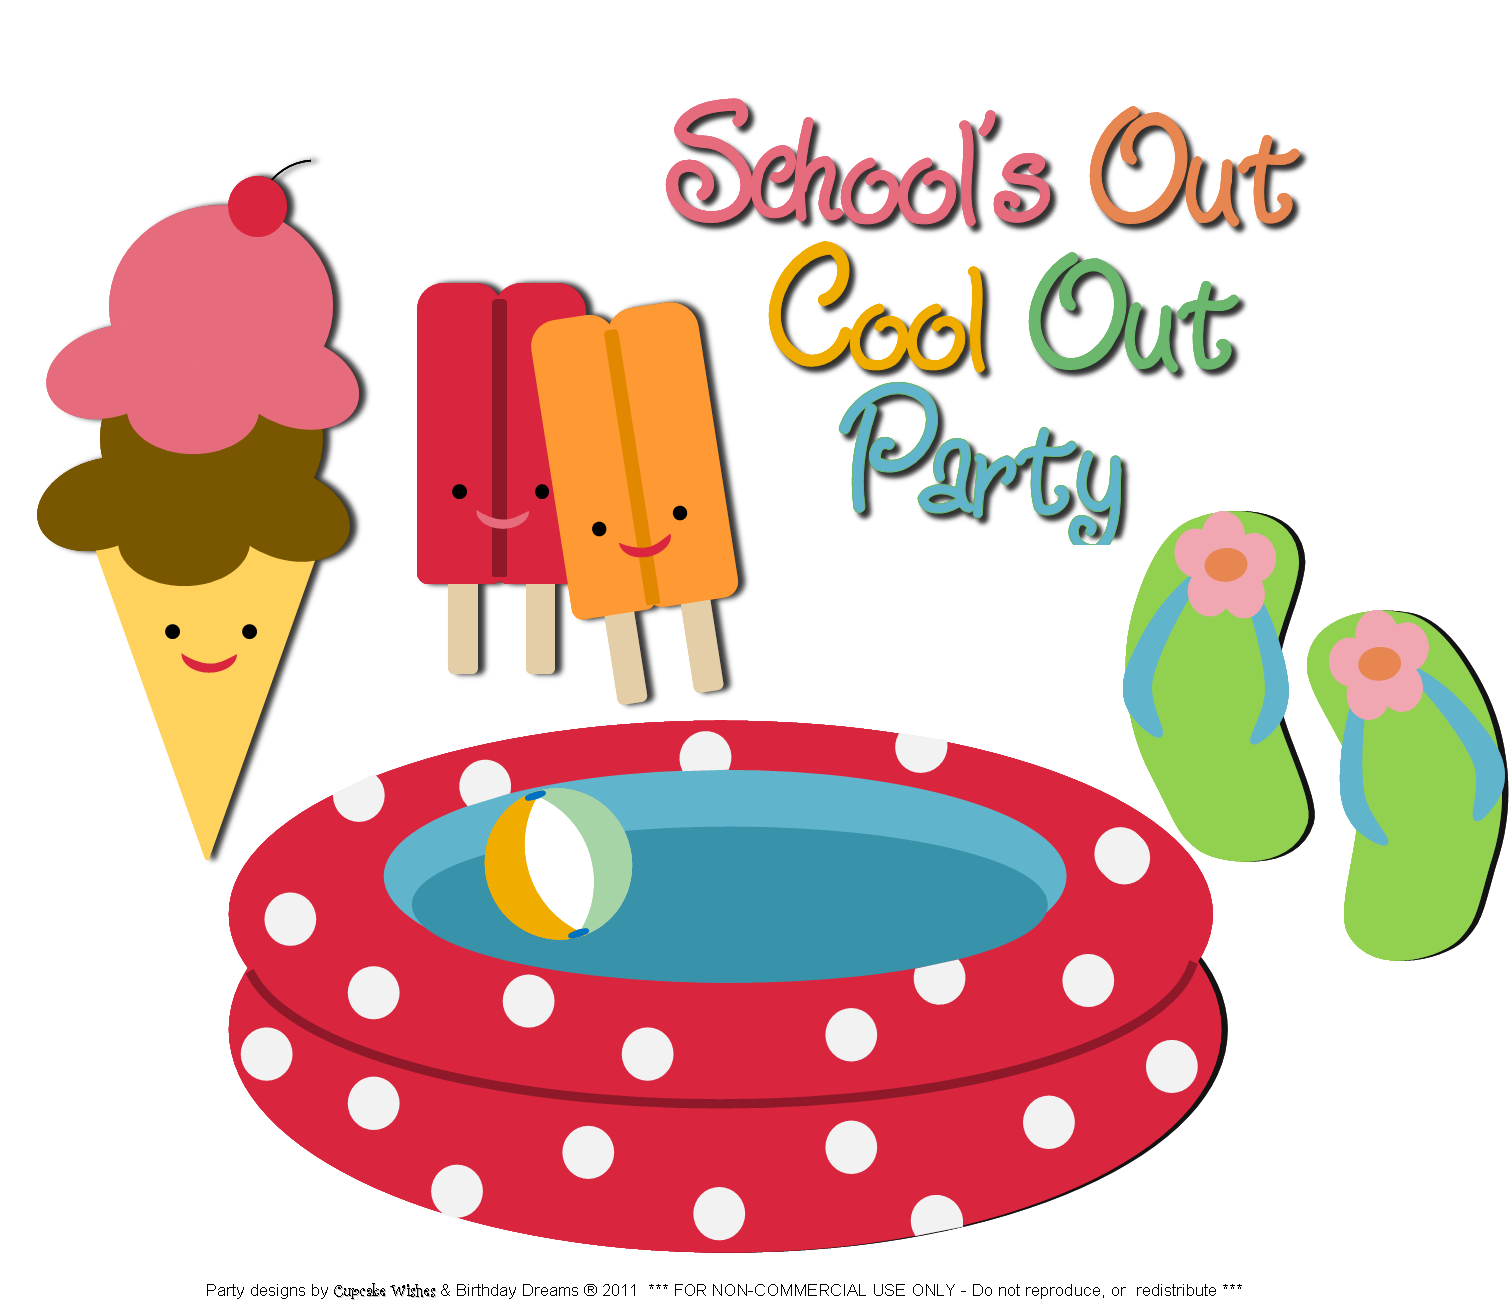 Clipart free school jpg Schools Out Party Clipart jpg